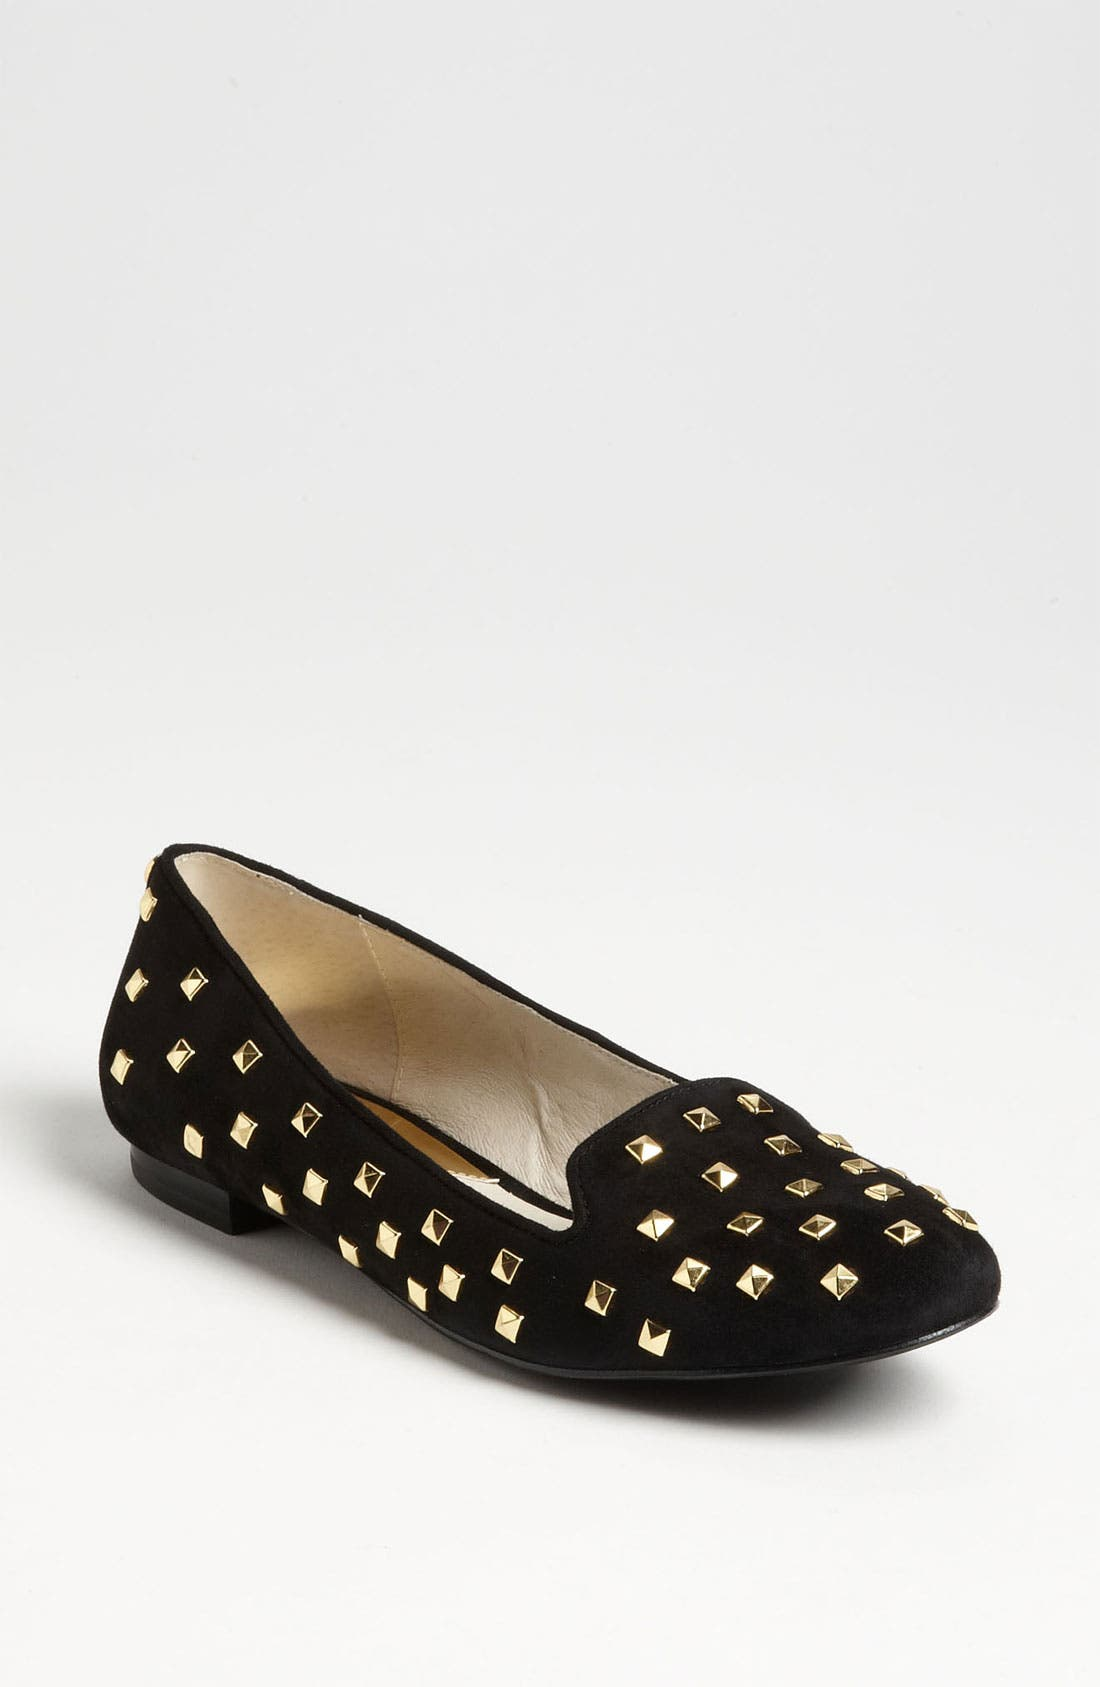 Alternate Image 1 Selected - MICHAEL Michael Kors 'Aria' Flat